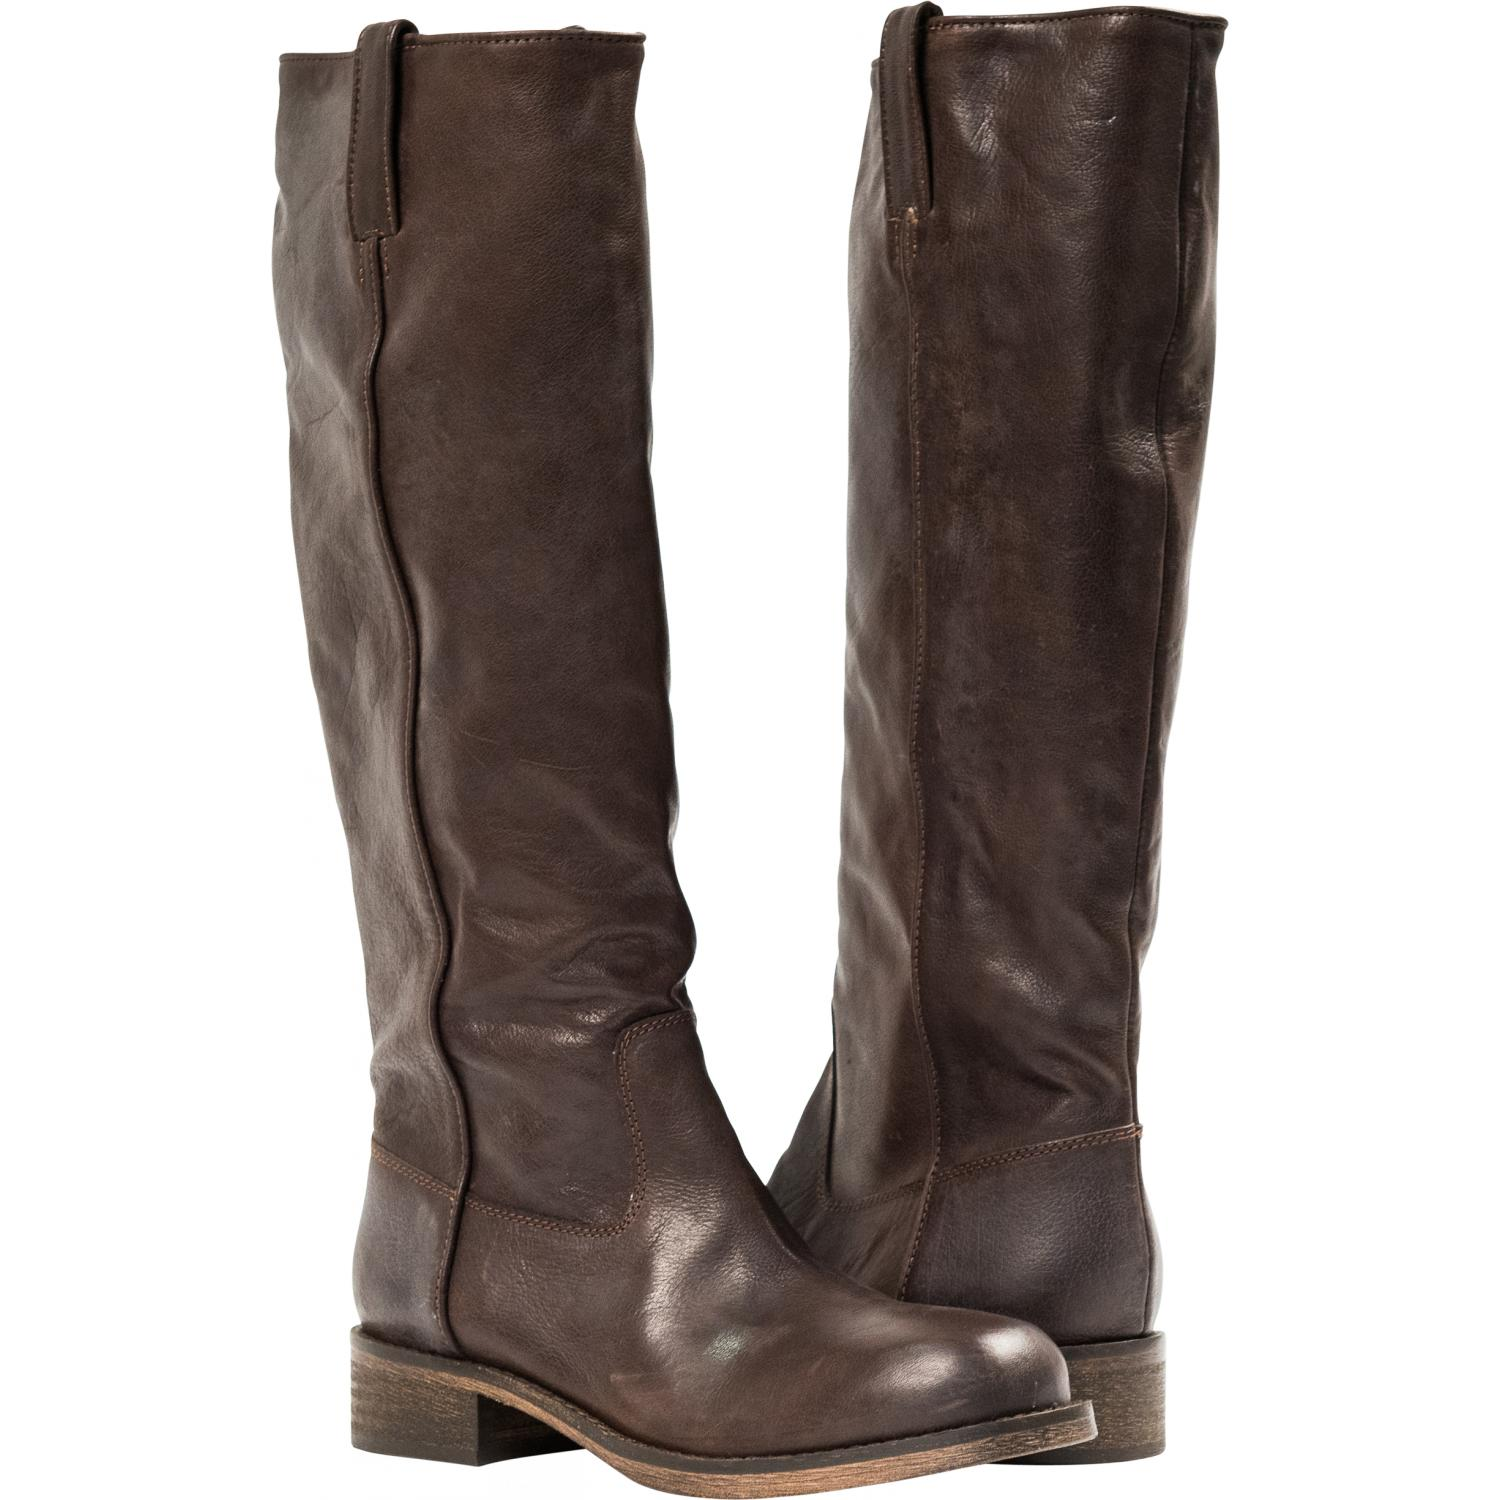 Arya Dark Brown Quot Moro Quot Nappa Leather Tall Boots Paolo Shoes